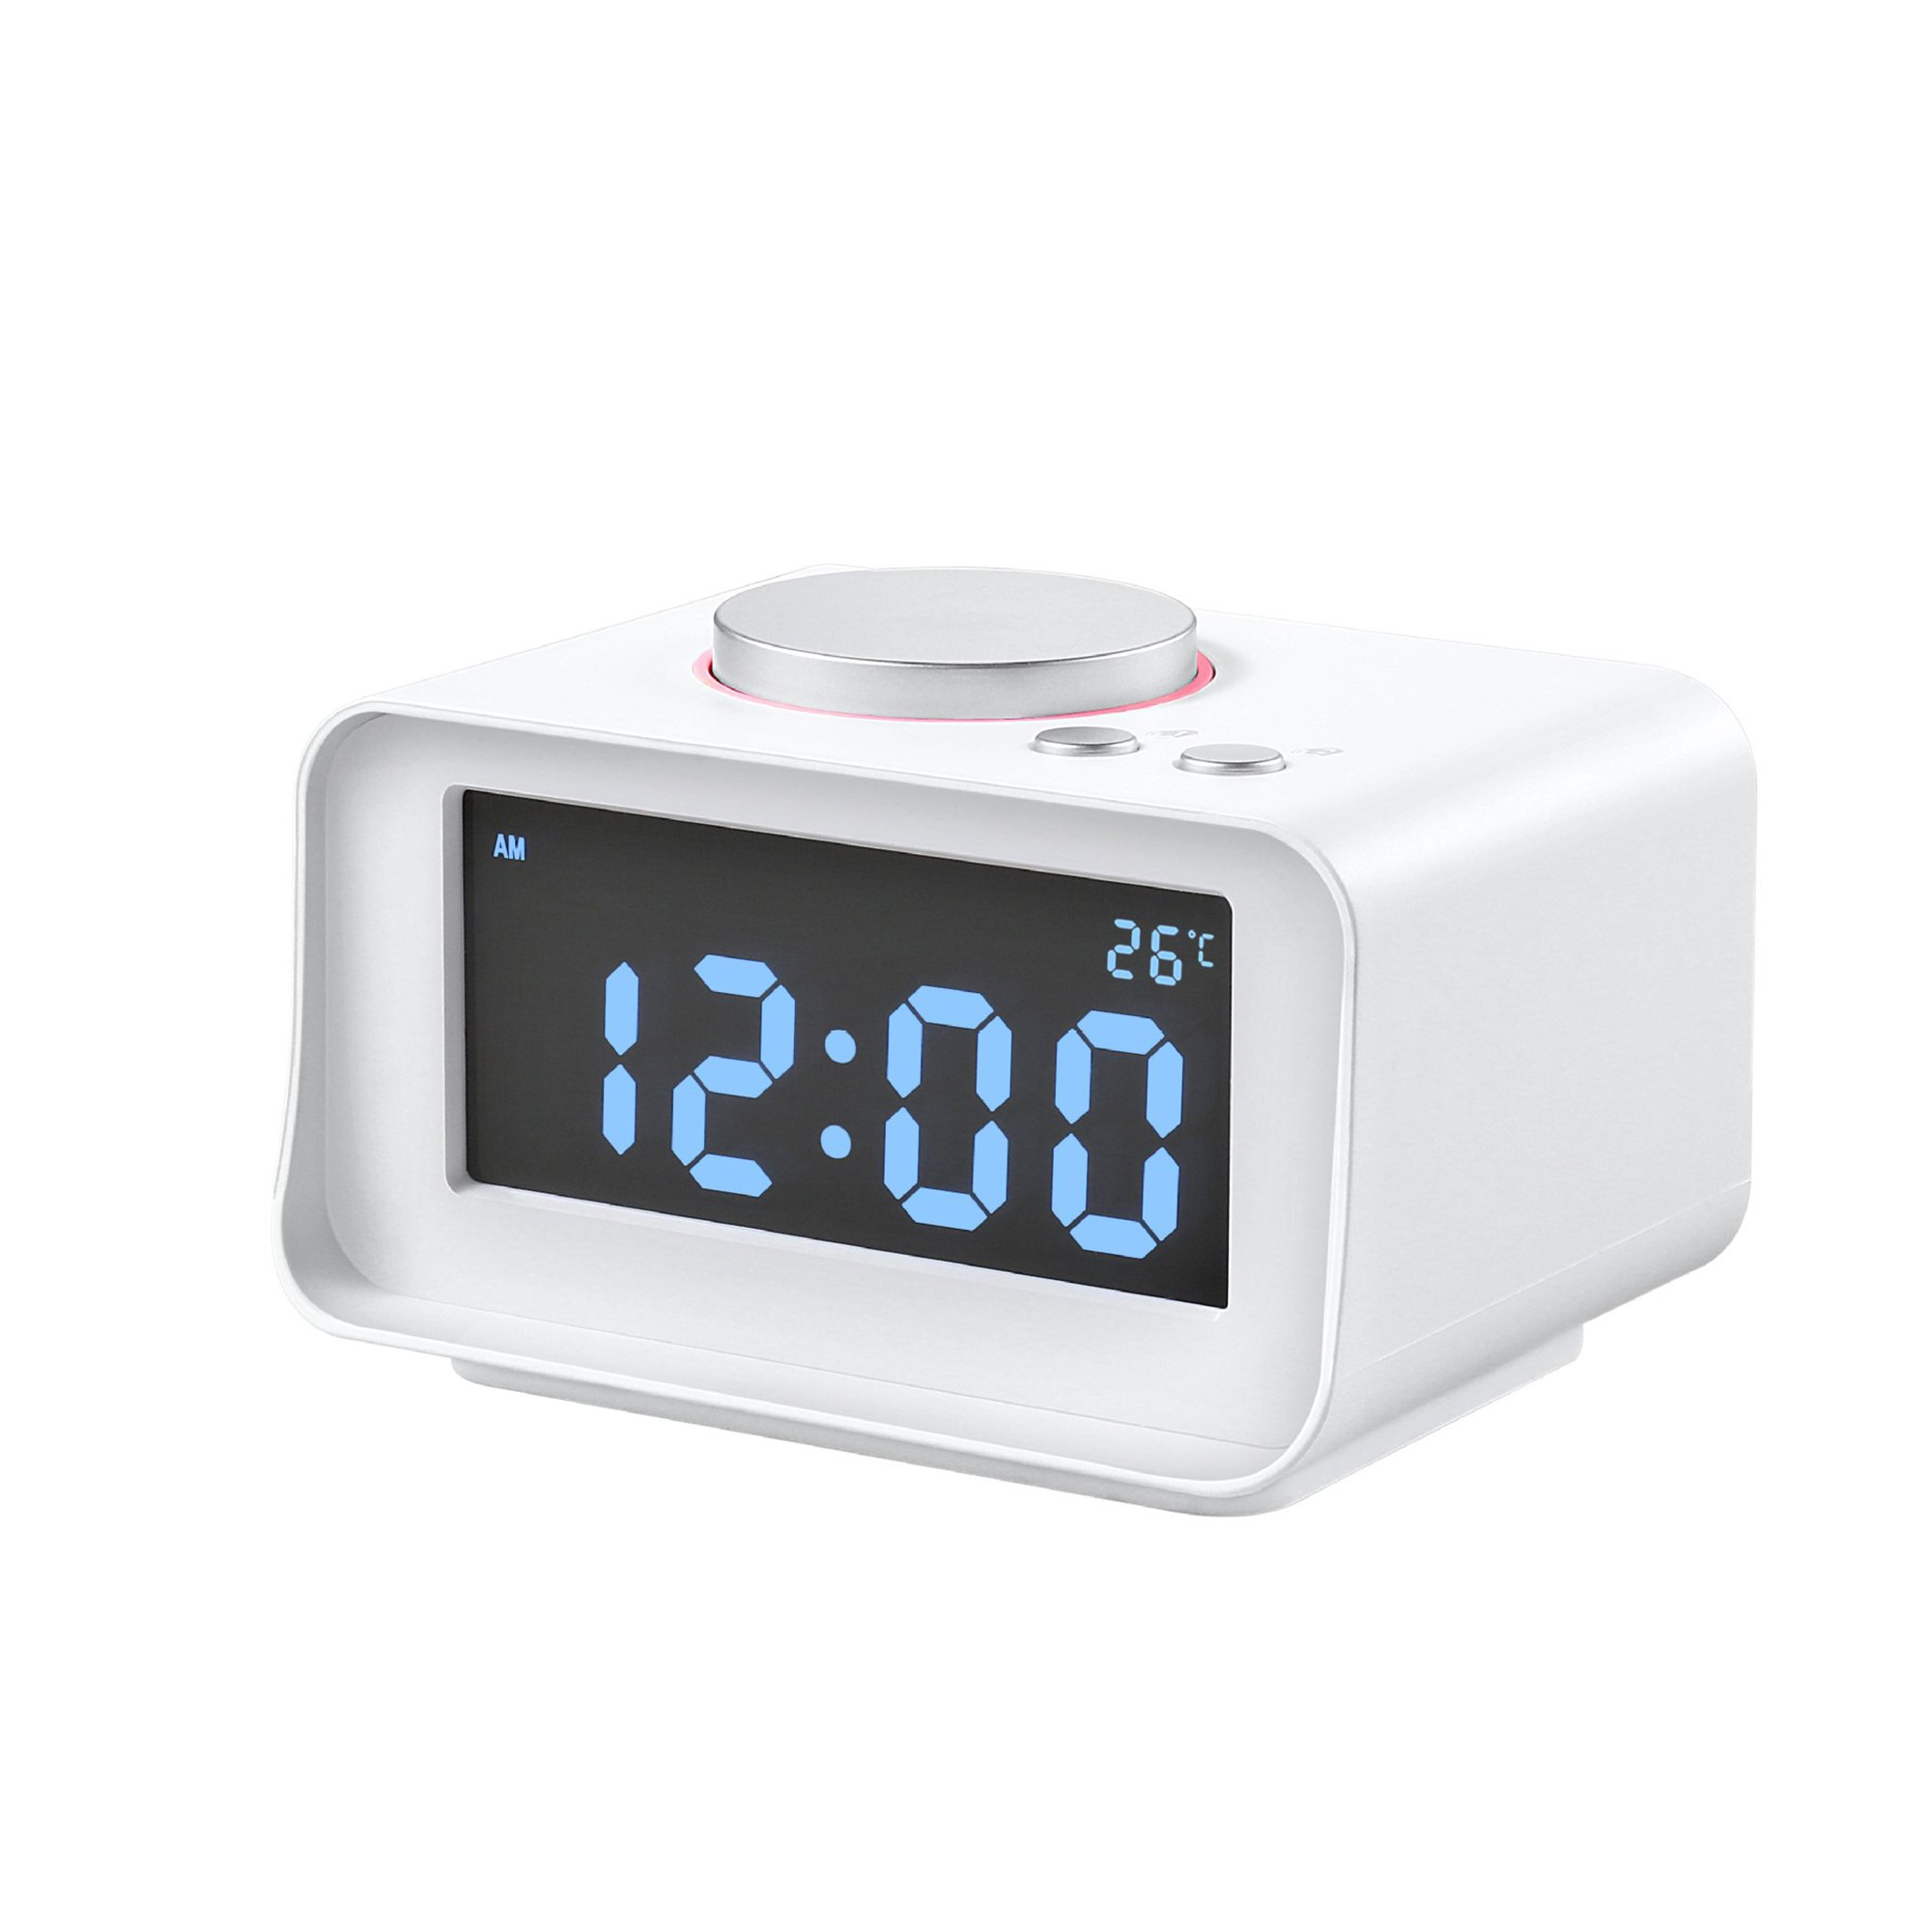 Electronic LED Alarm Clock, Mute Luminated Bedroom Digital Clock With Multi-functions of Temperature, Speaker, USB Phone Charger, FM, Dual-alarm, Dimmable Backlight, AUX Audio for Indoor Home Use